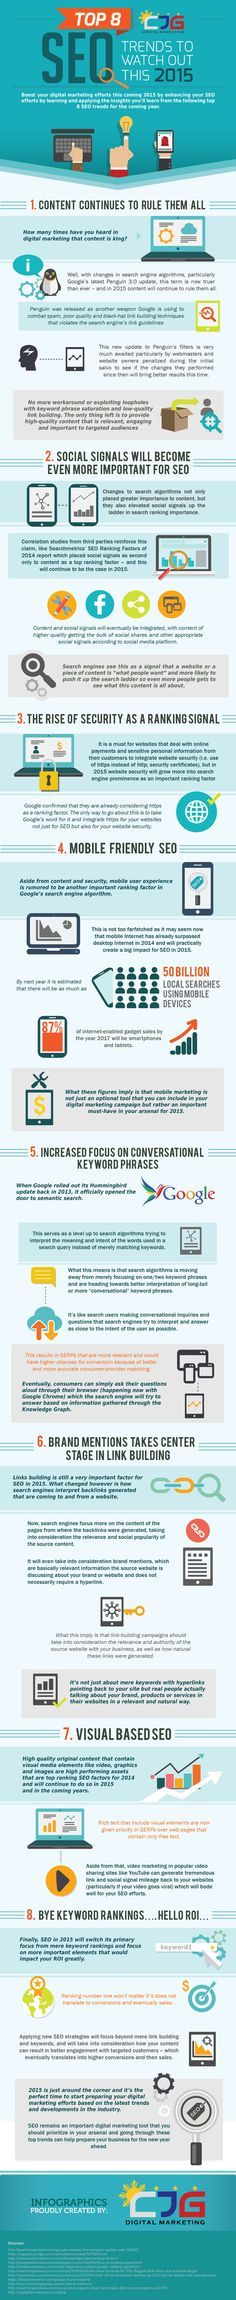 Fresh infographic from our blog! Top 8 SEO Trends to Watch Out this 2015. #seo2015 #seofor2015 Latest News & Infographics in Digital Marketing! http://webworksagency.com